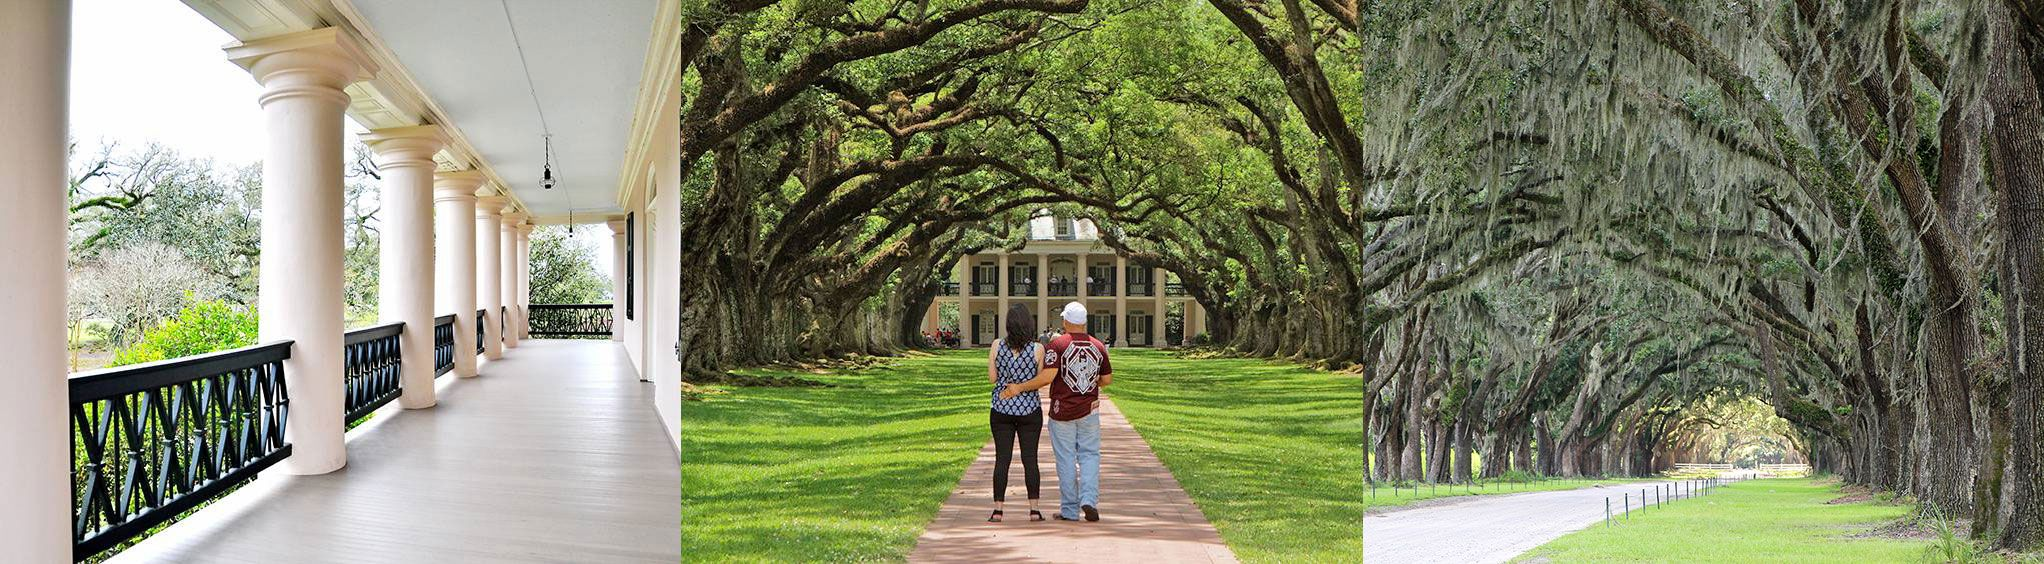 Oak Alley Plantation in Vacherie, LA near New Orleans, LA